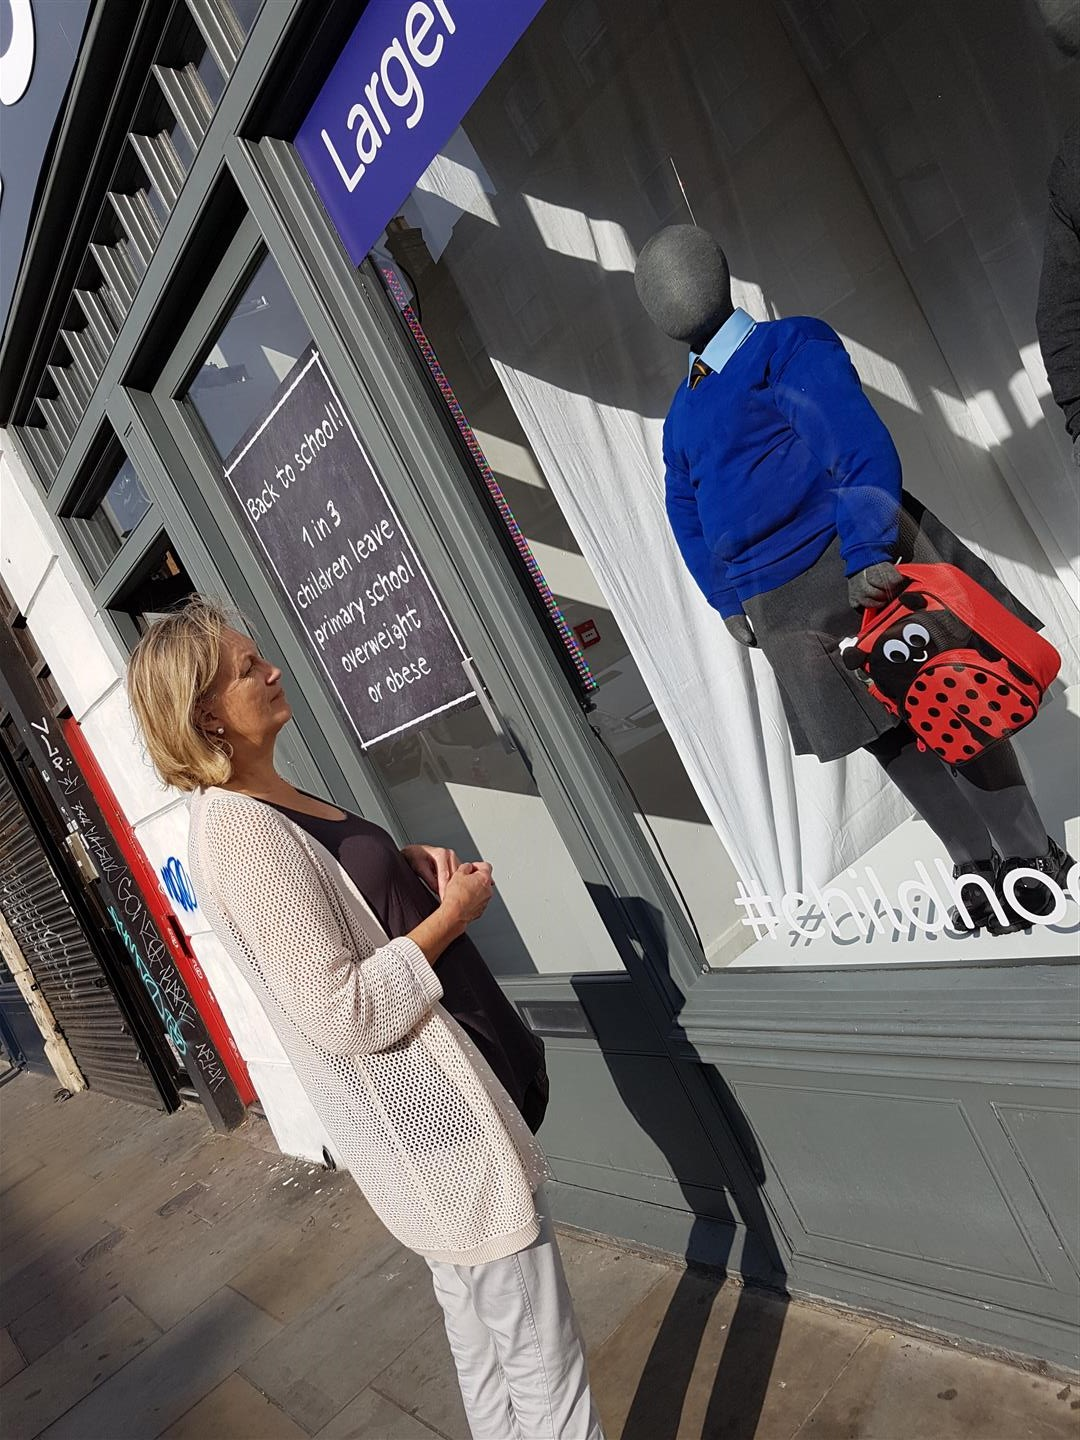 A lady passing by examines a window display containing obese mannequins in tight school uniforms.